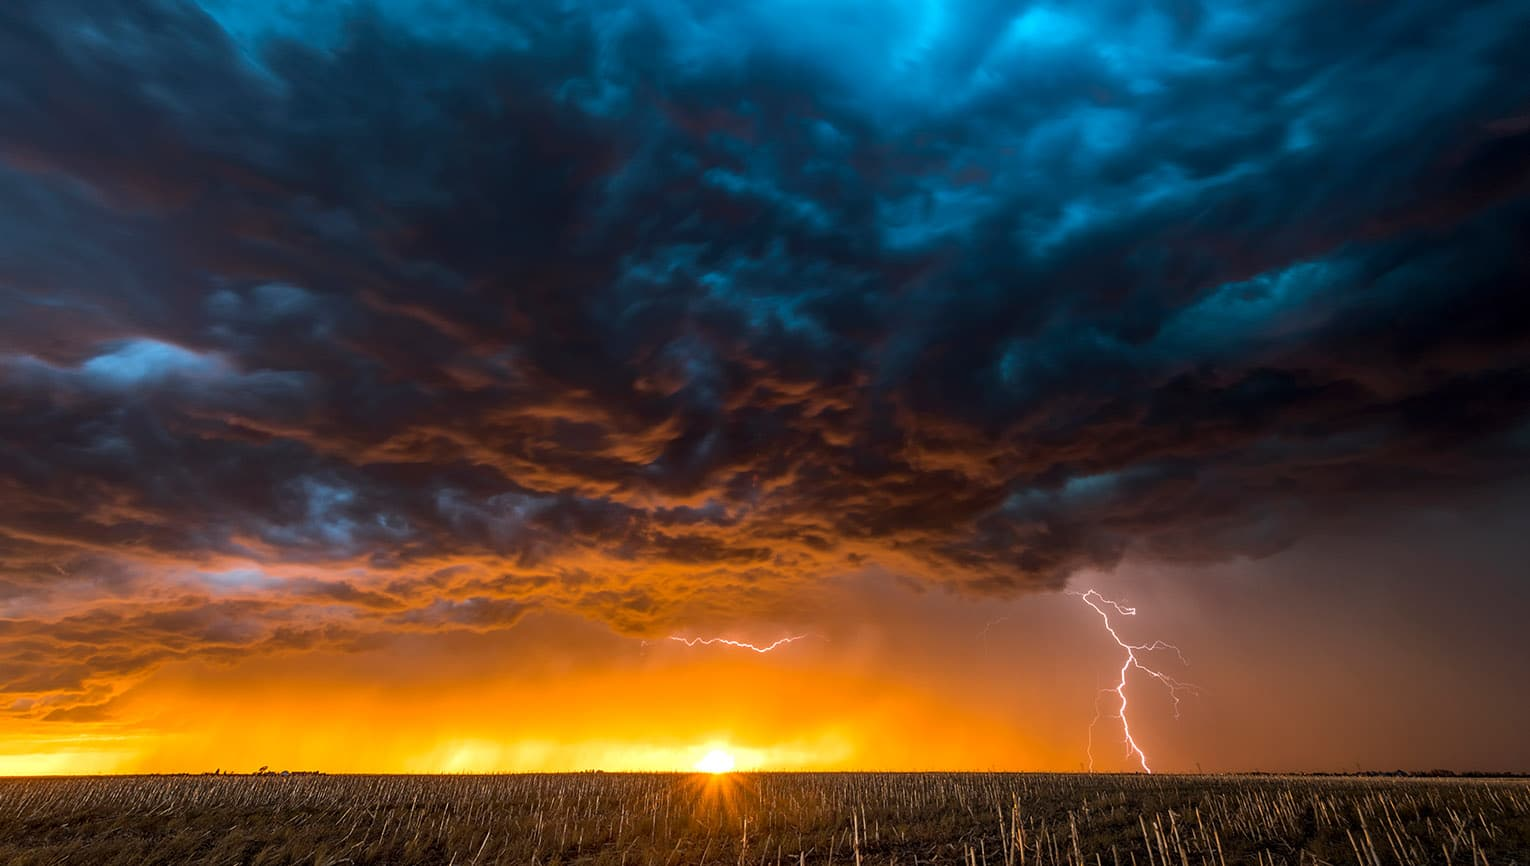 storm with lightning over field